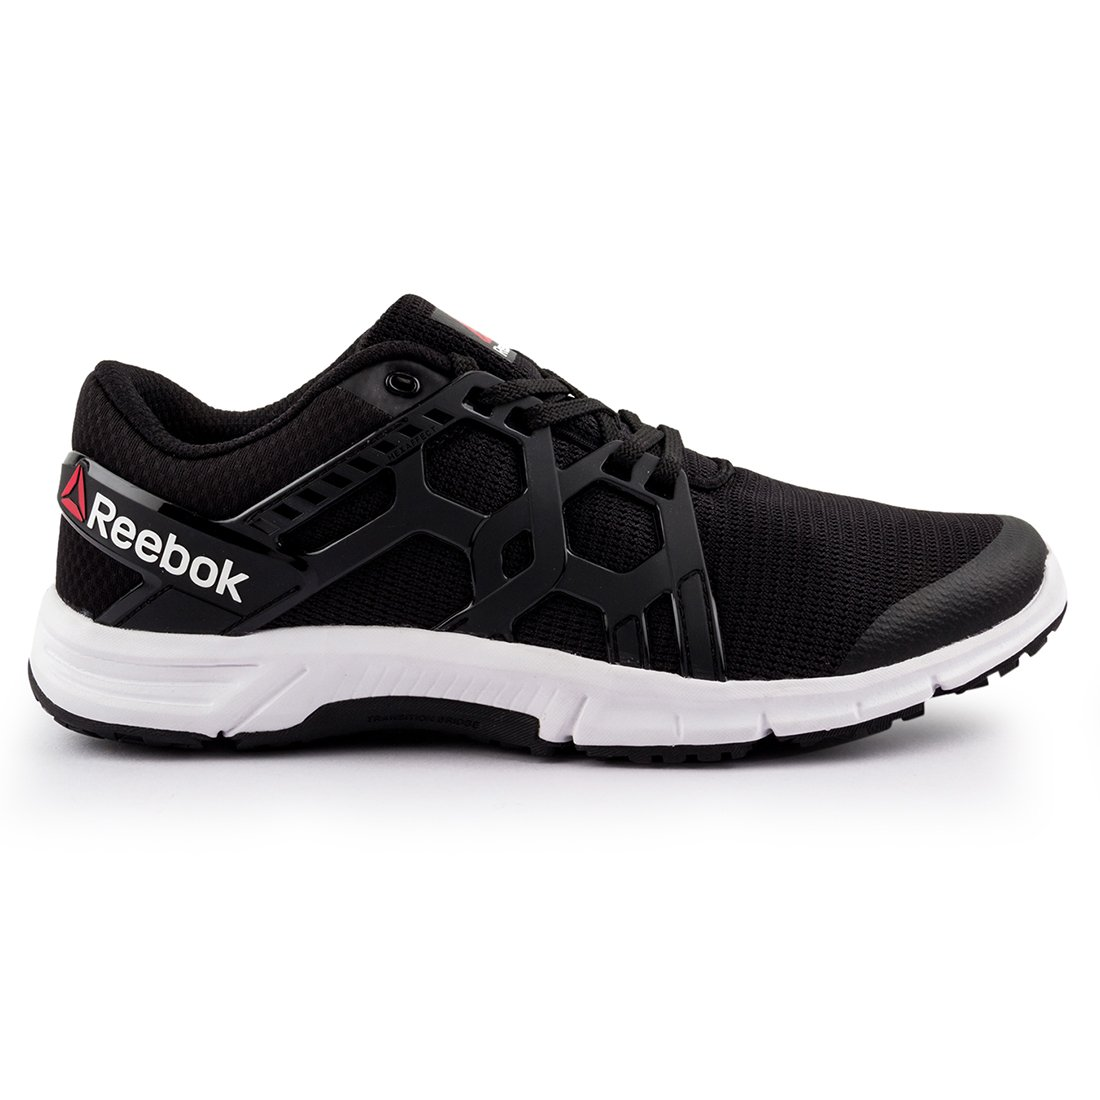 e05402bbbb3 Reebok Men's Gusto Run Sports Running Shoe-Uk-8: Buy Online at Low Prices  in India - Amazon.in